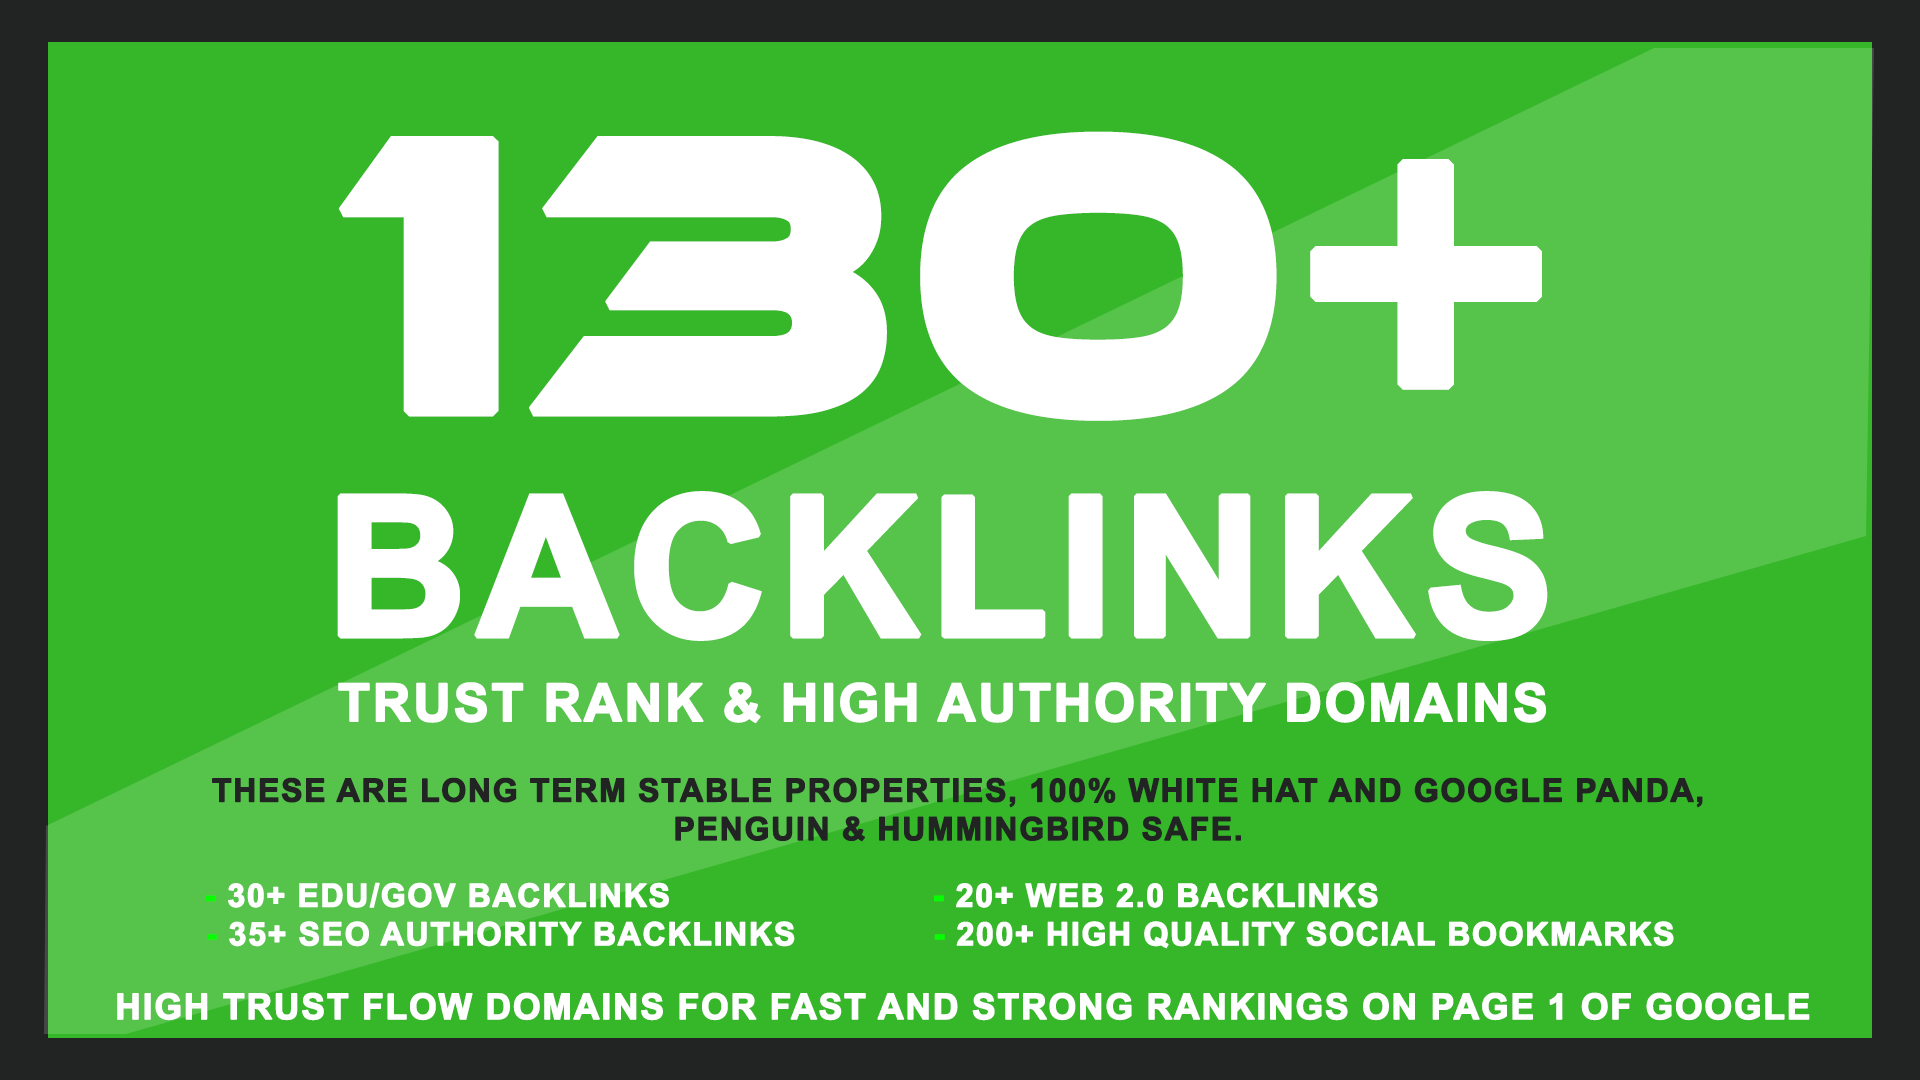 130+ High Pr SEO Authrity Backlinks to skyrocket your Google Rankings